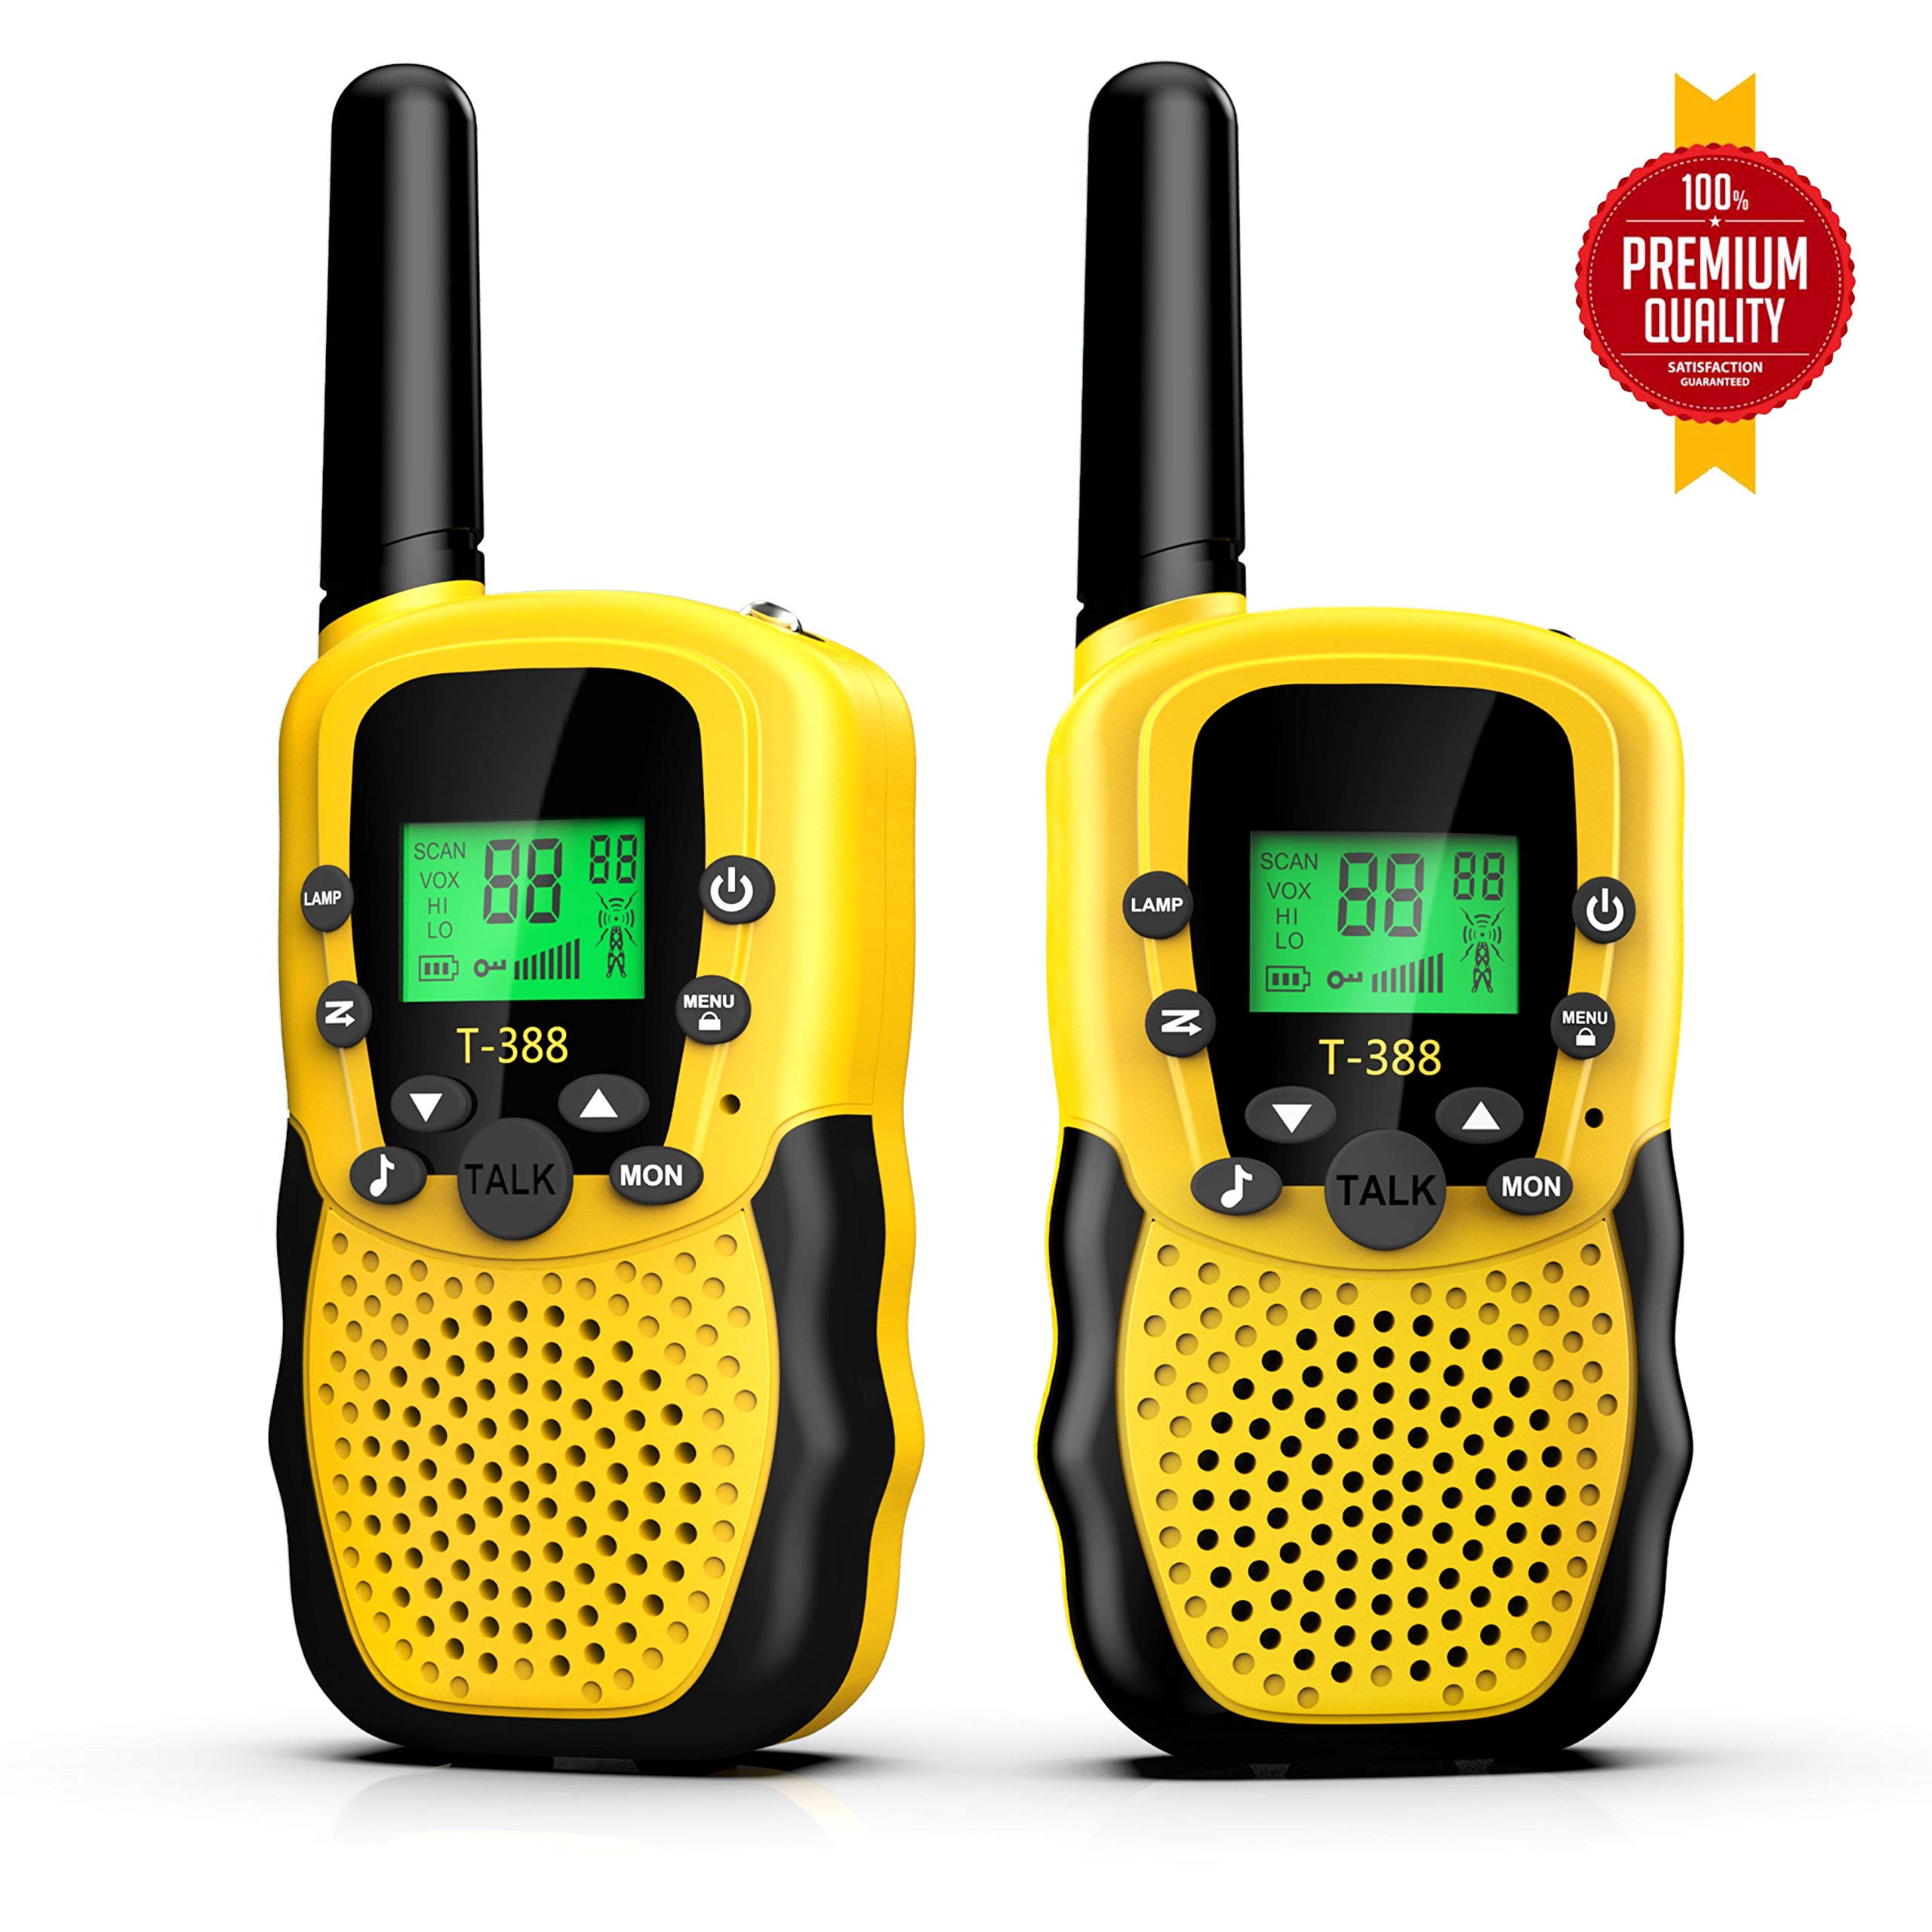 Walkies Talkies for Kids, 22 Channels FRS/GMRS UHF Two Way Radios 4 Miles Handheld Mini Kids Walkie Talkies for Kids Best Gifts Kids Toys Built in Flashlight by JimBest1970 (Image #1)